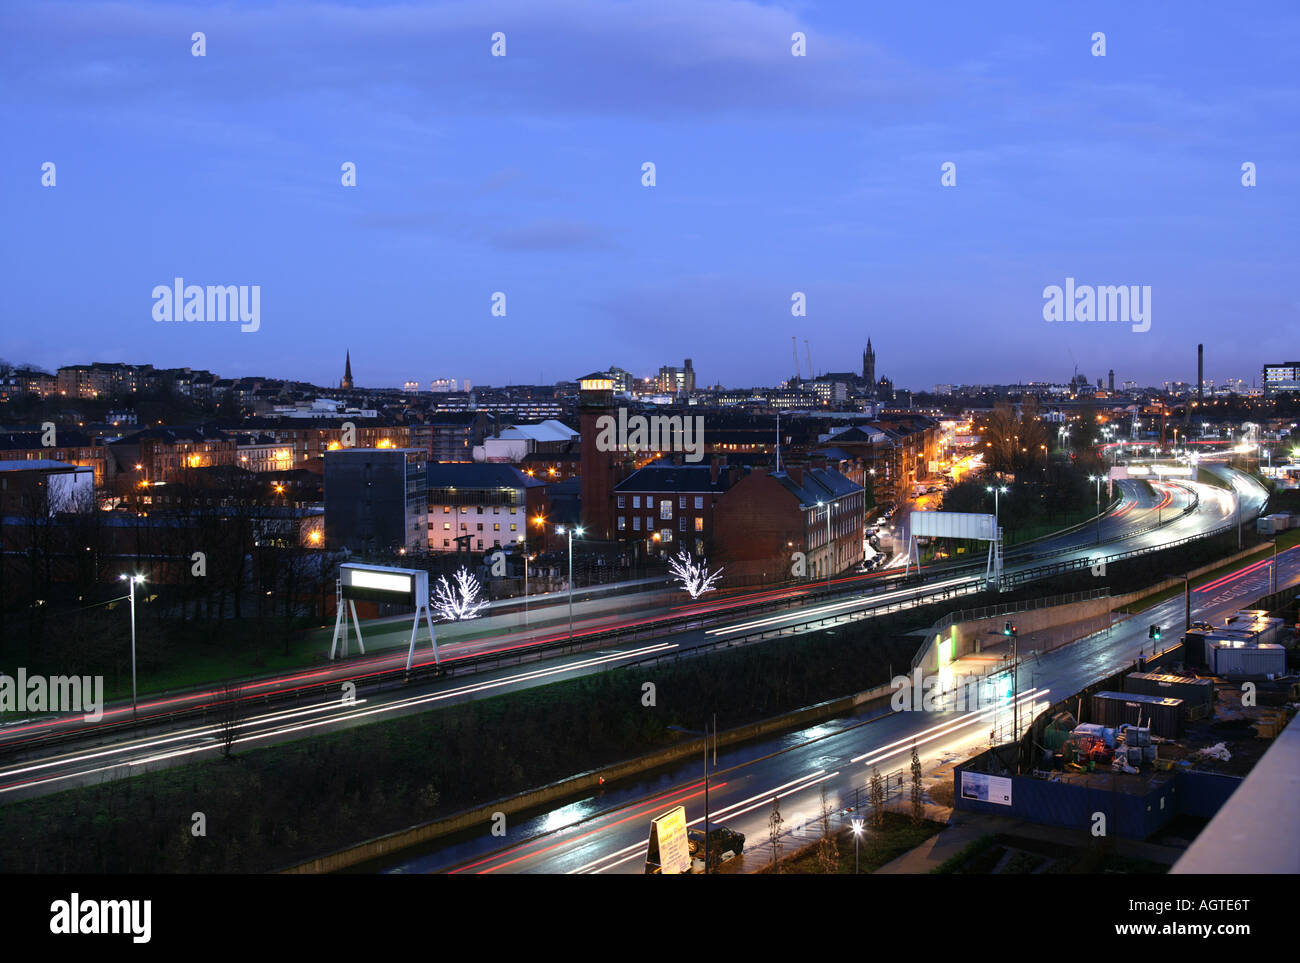 A night shot of Partick from Clyde Waterfront - Stock Image